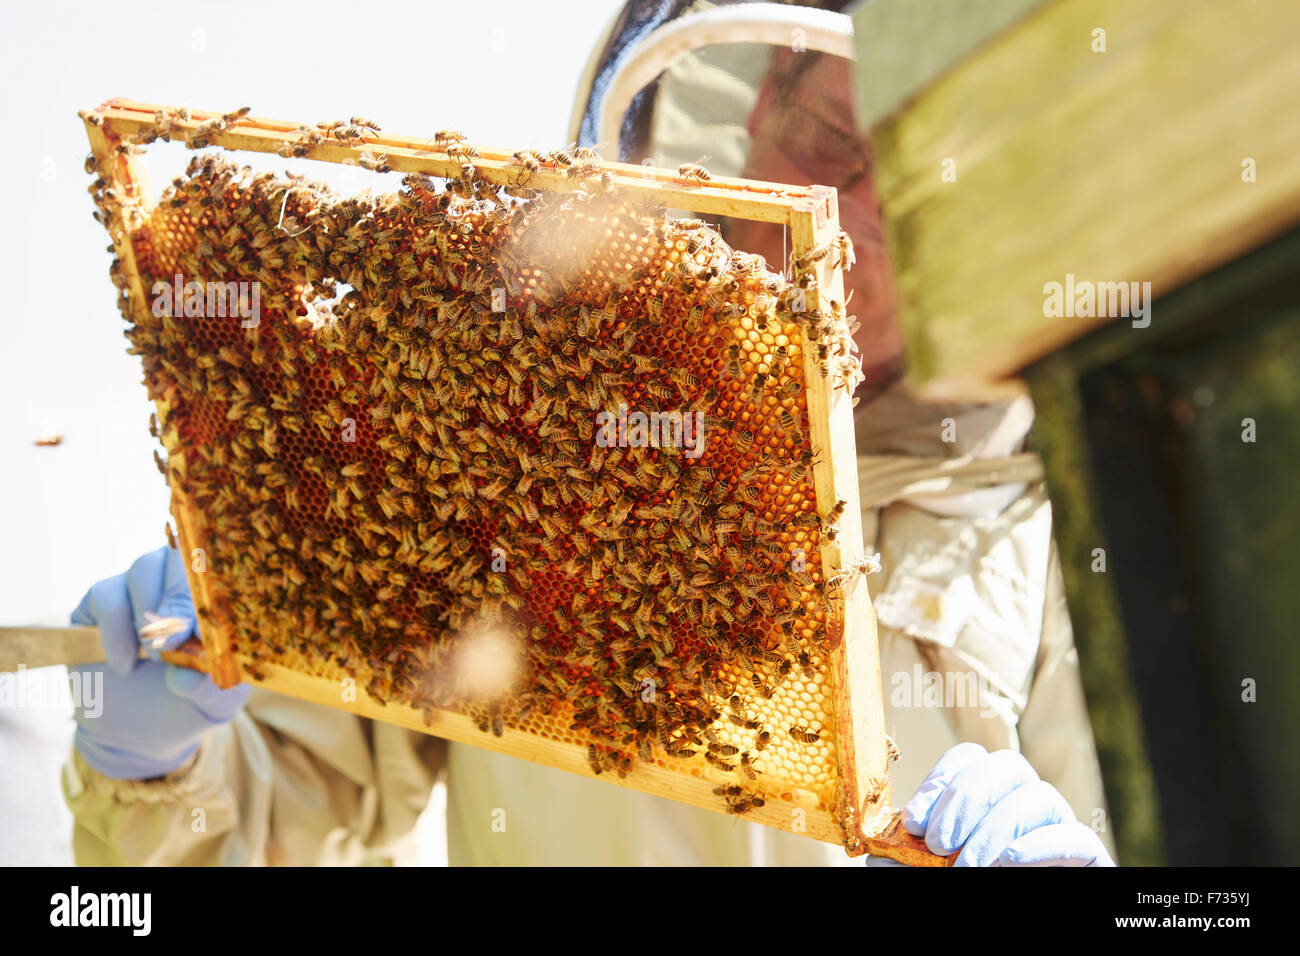 A beekeeper holding up a super frame with worker bees loading the cells in honey. - Stock Image